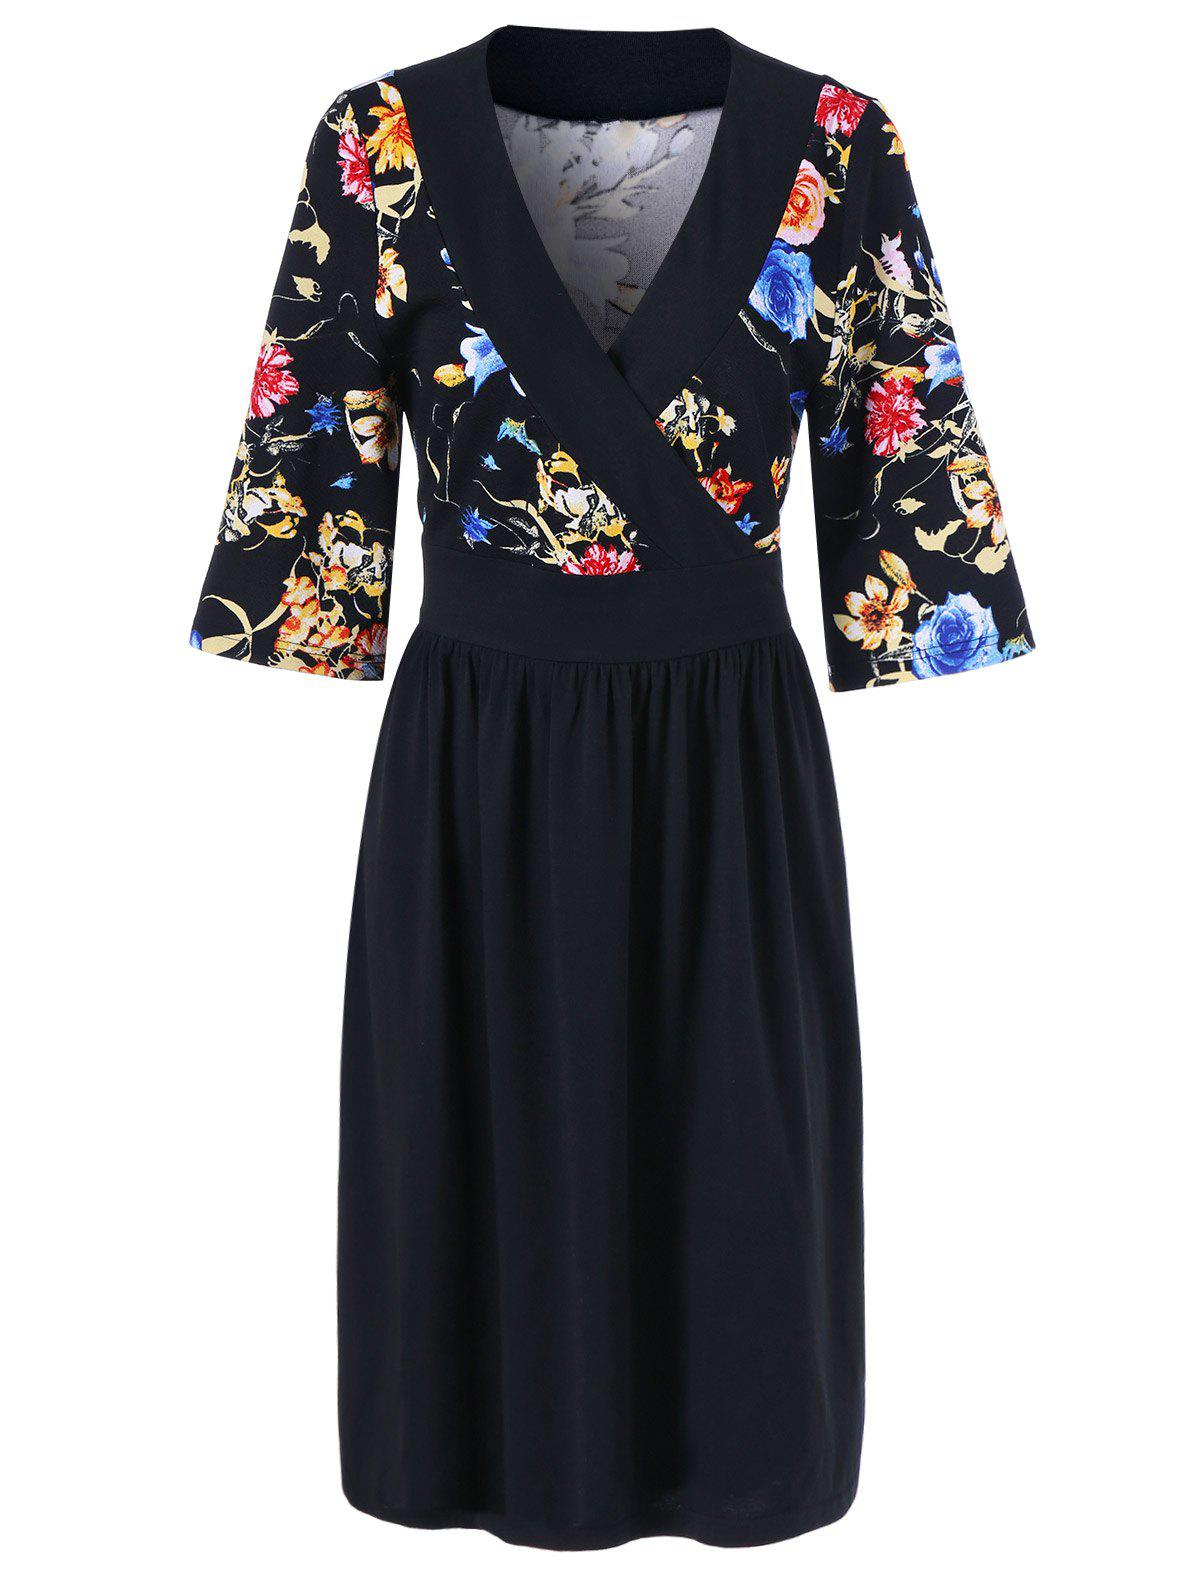 Plus Size Floral Surplice Dress - Noir XL